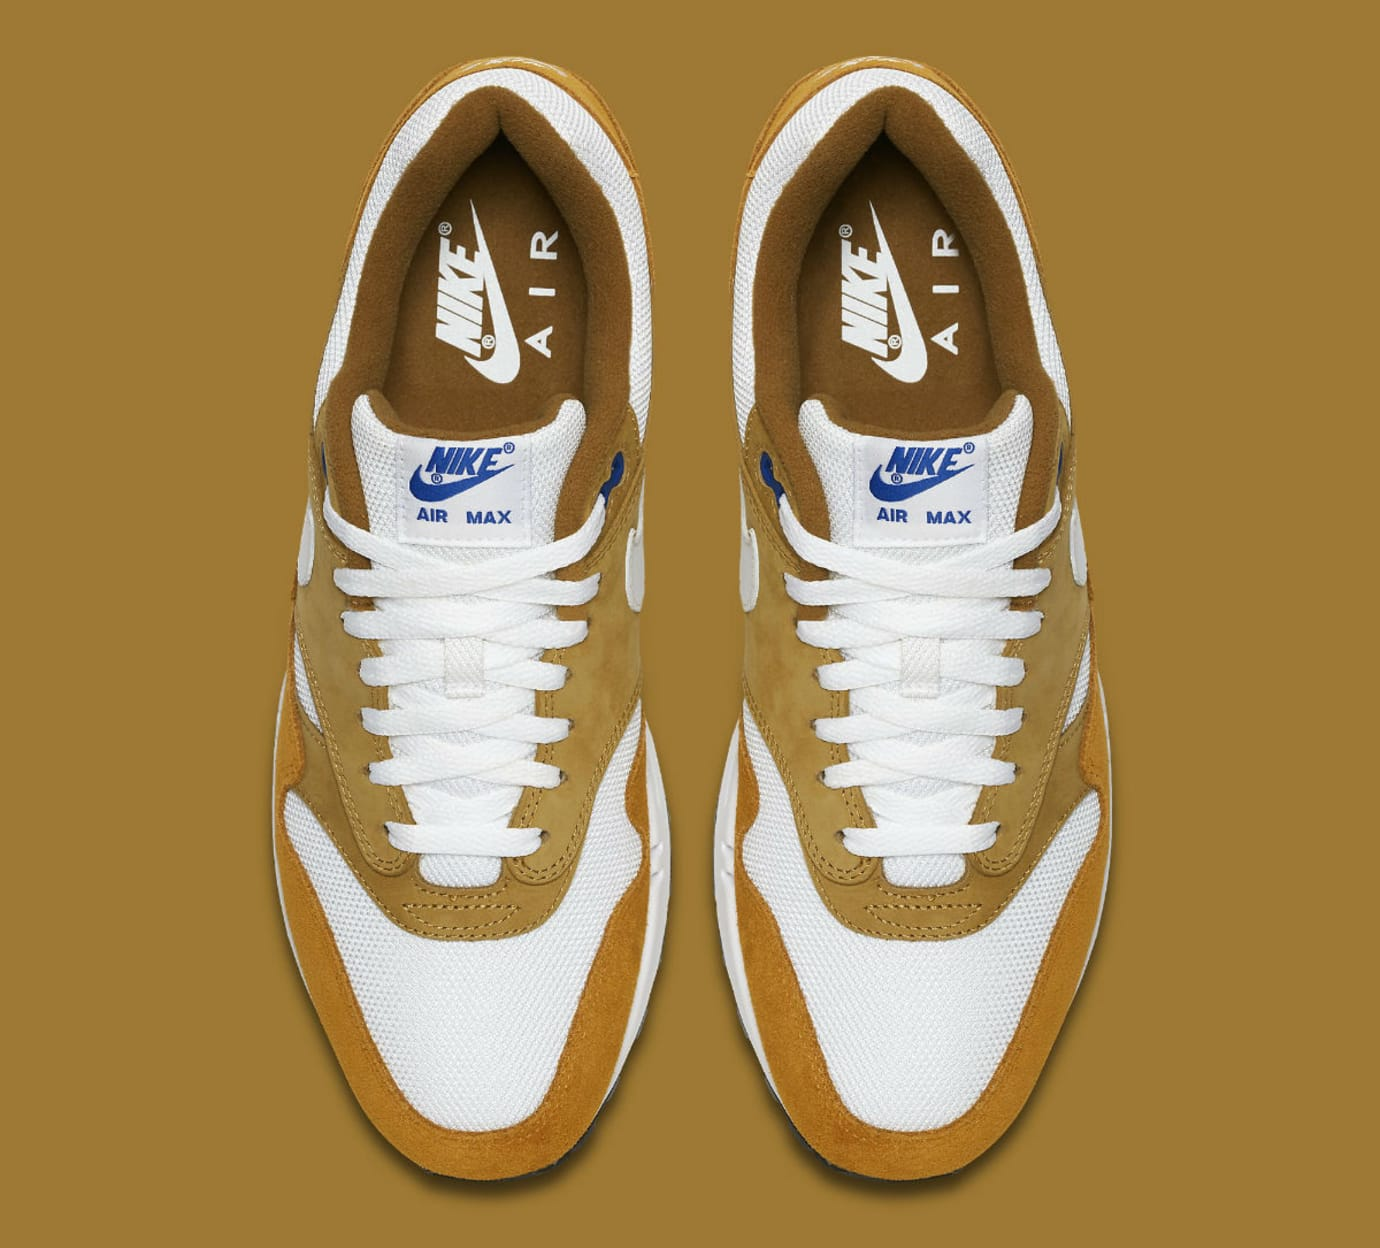 Nike Air Max 1 Curry 2018 Release Date 908366 700 | Sole